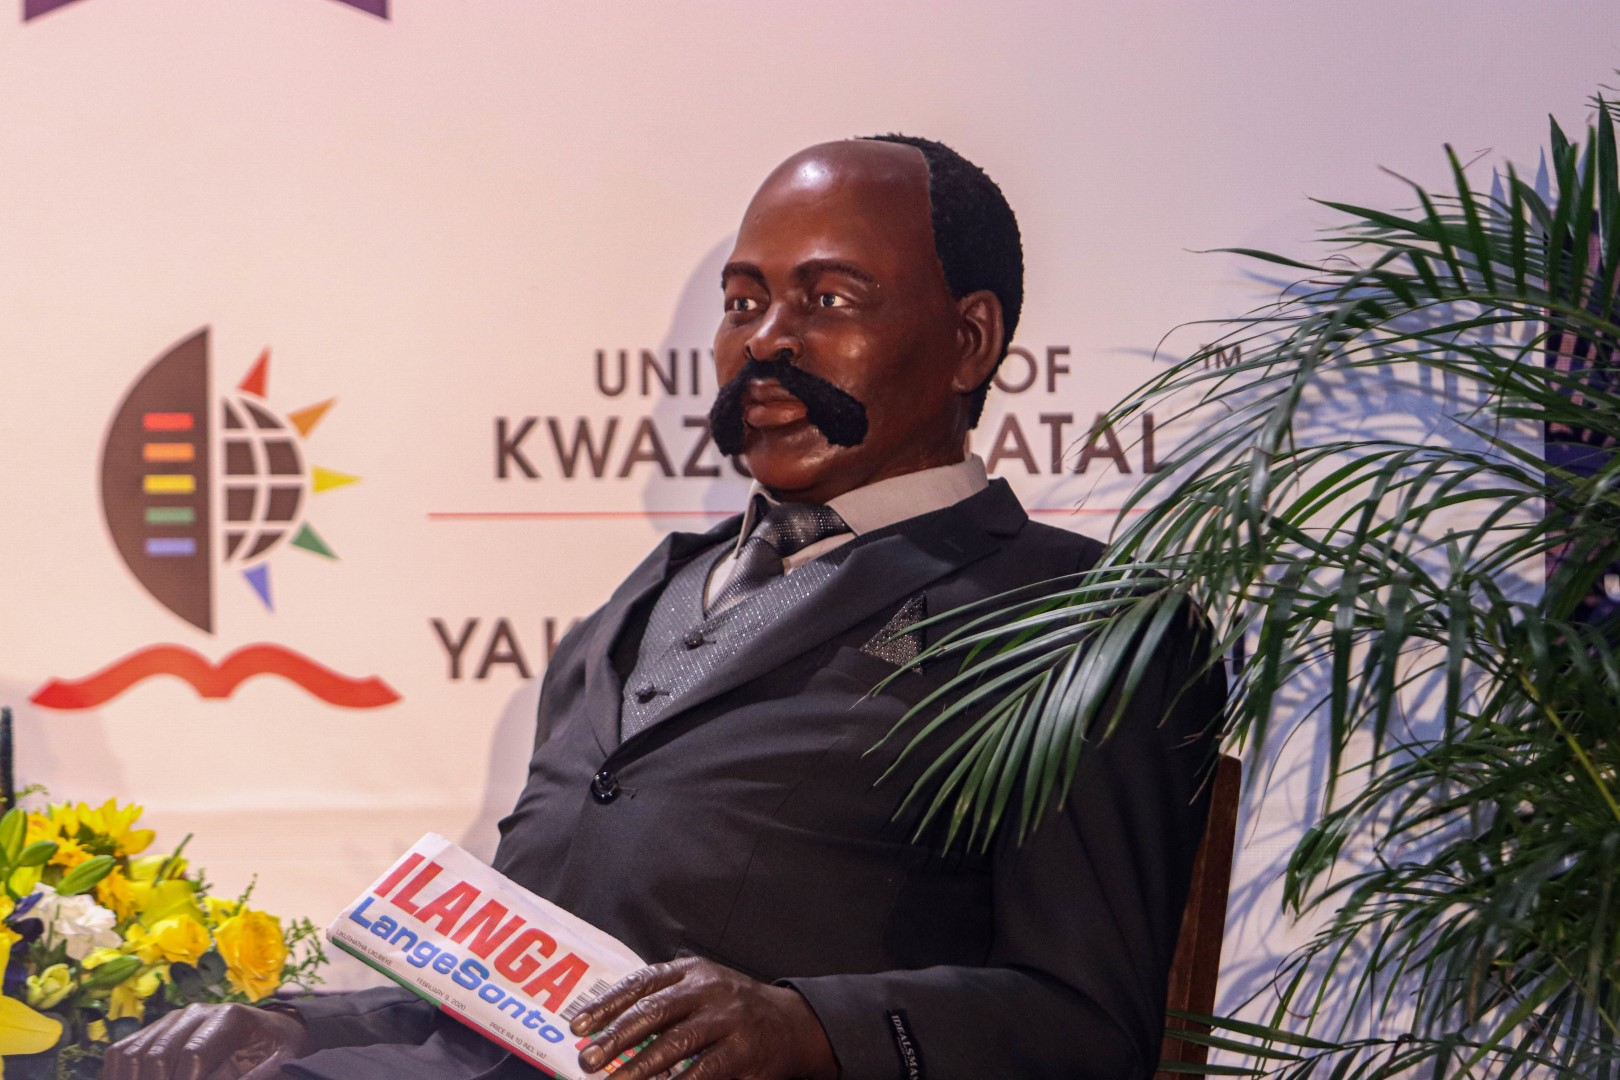 A wax figure of JL Dube take sthe spotlight at the Tribute lecture